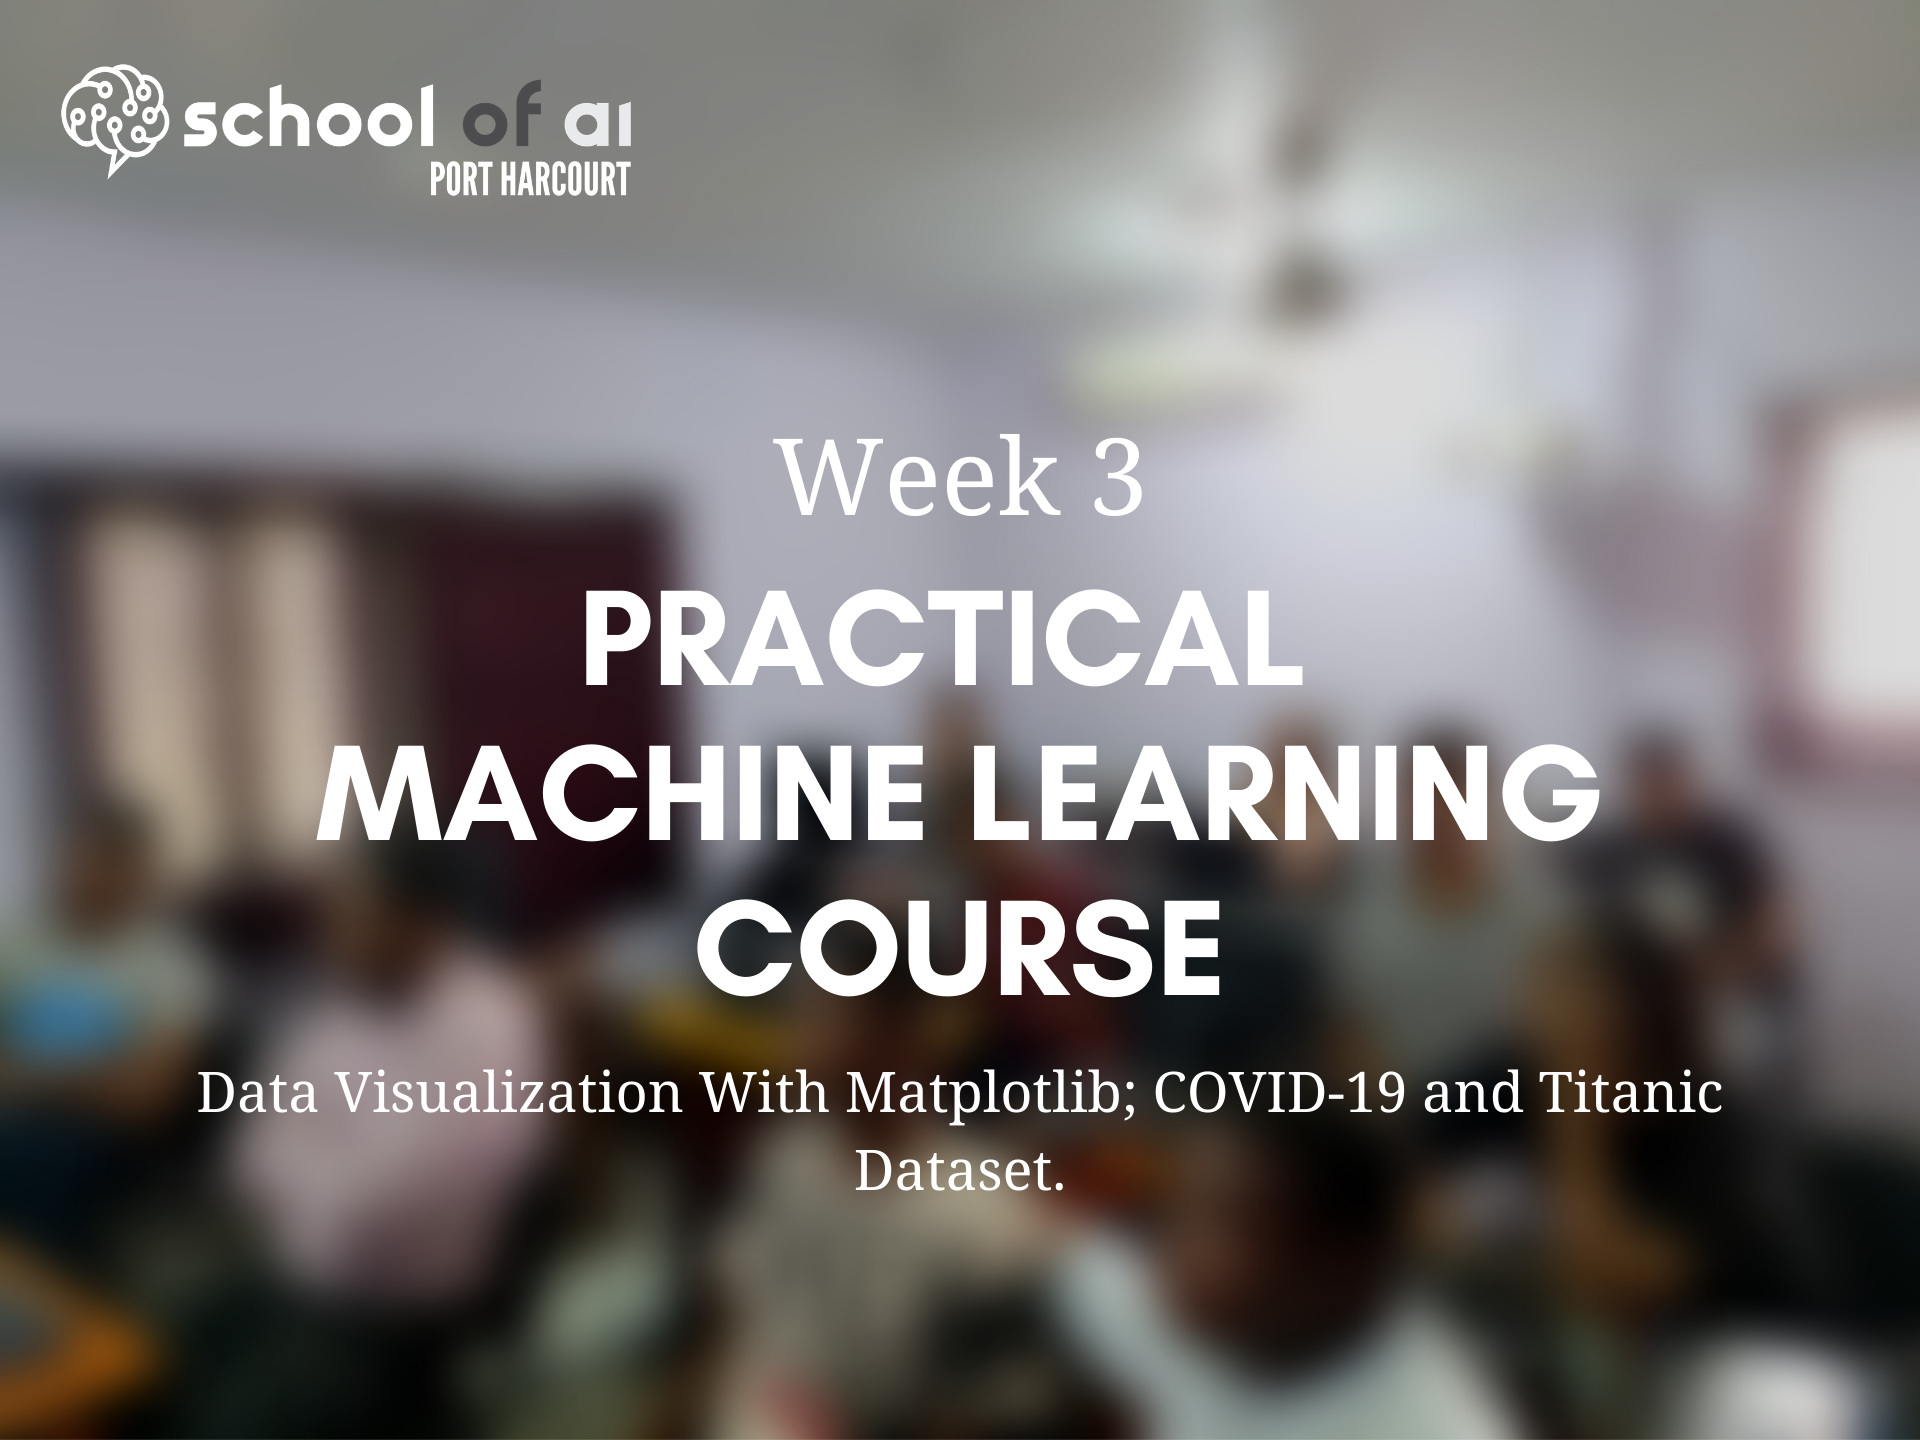 Week 3 Practical Machine Learning Course Highlights Poster